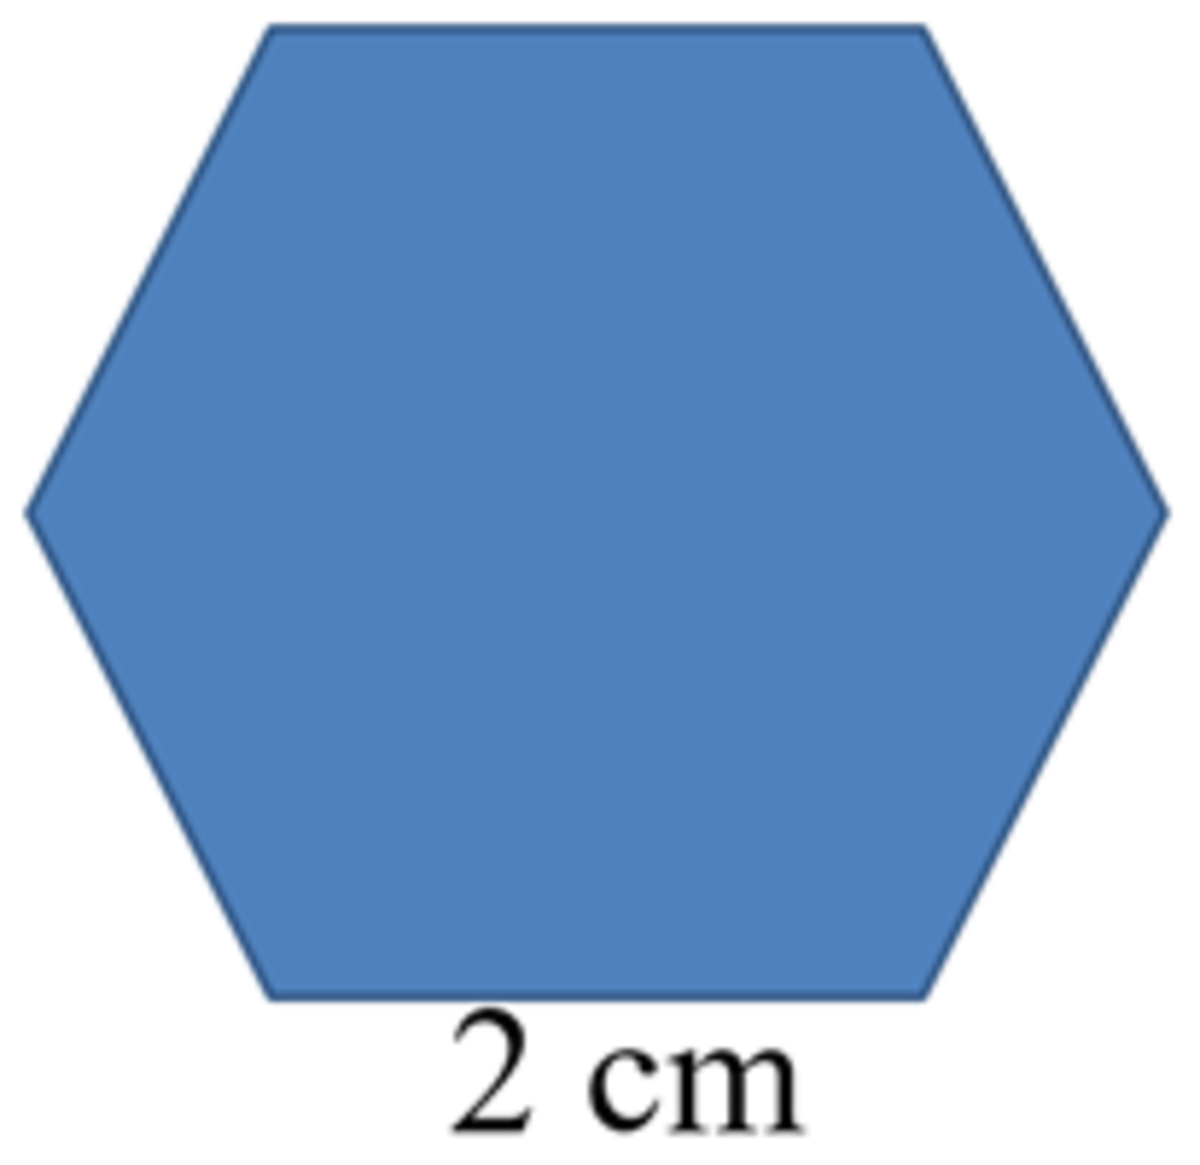 pythagoras-theorem-using-polygons-circles-and-solids